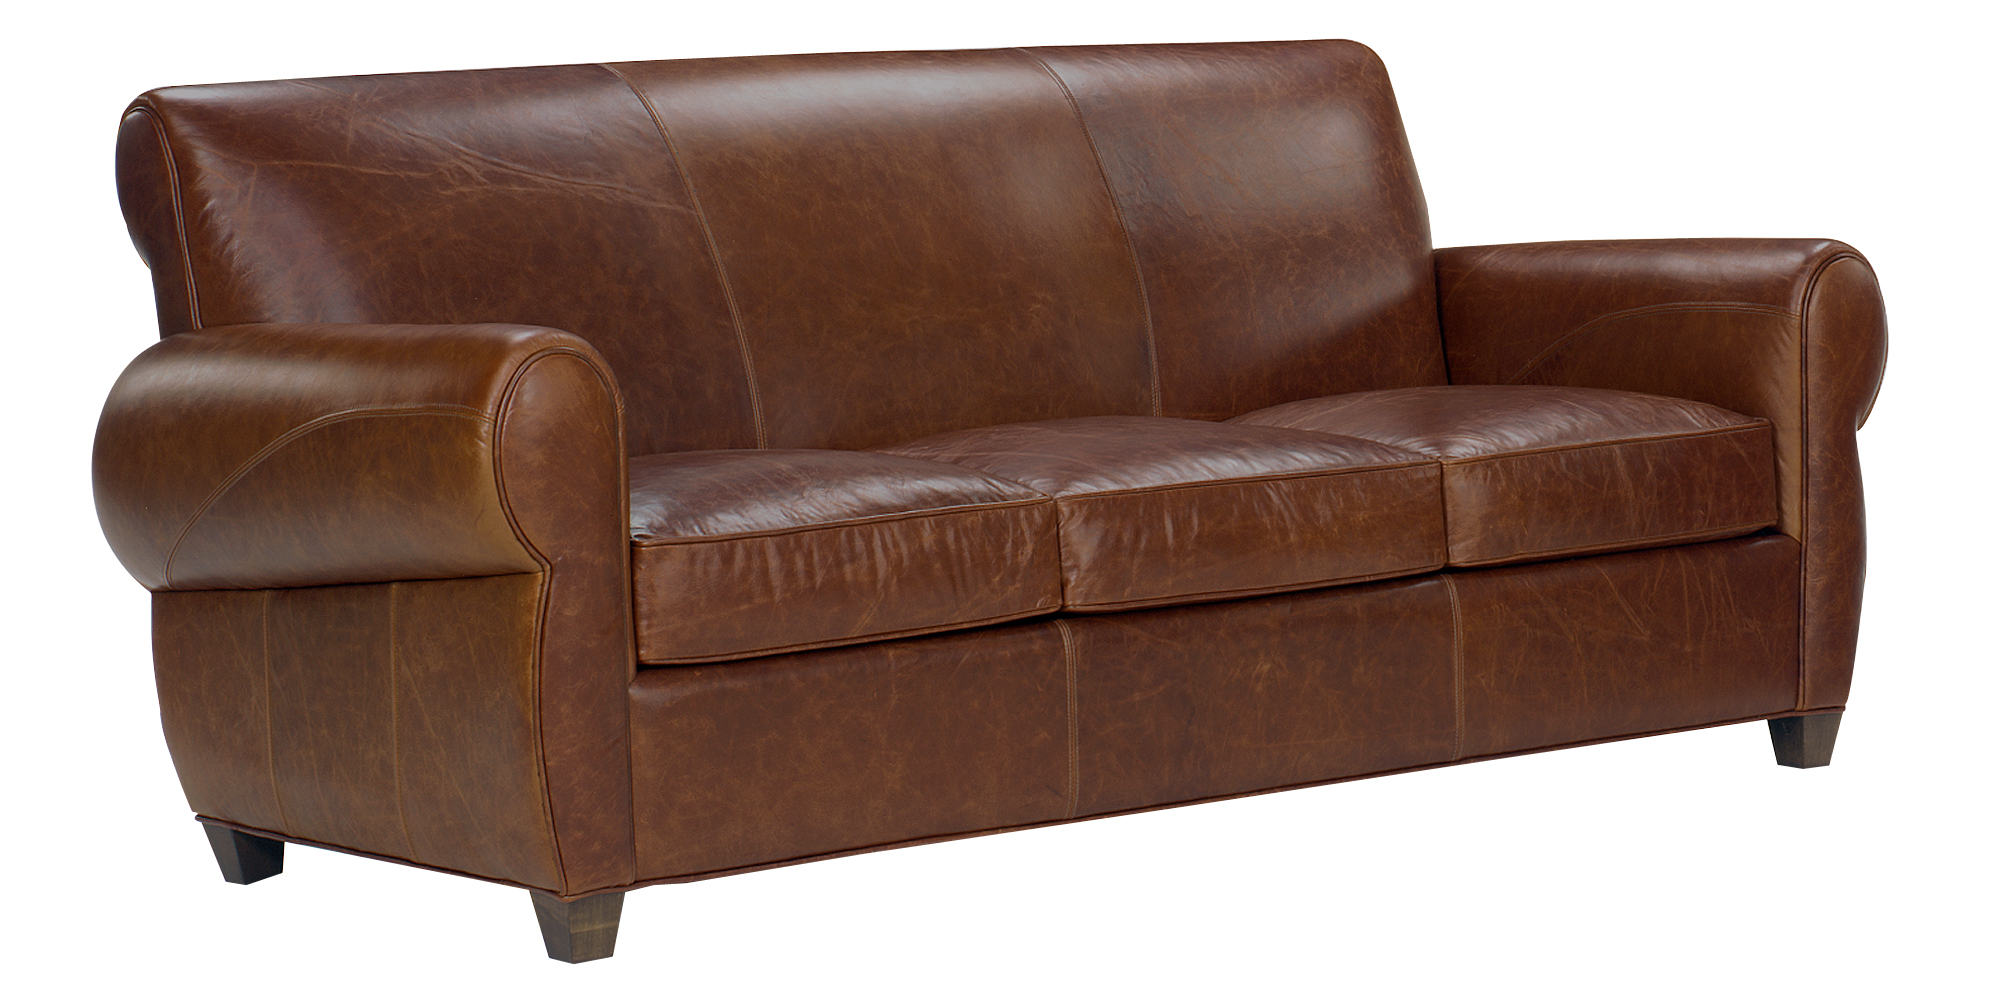 Rustic Leather Sofa Roselawnlutheran